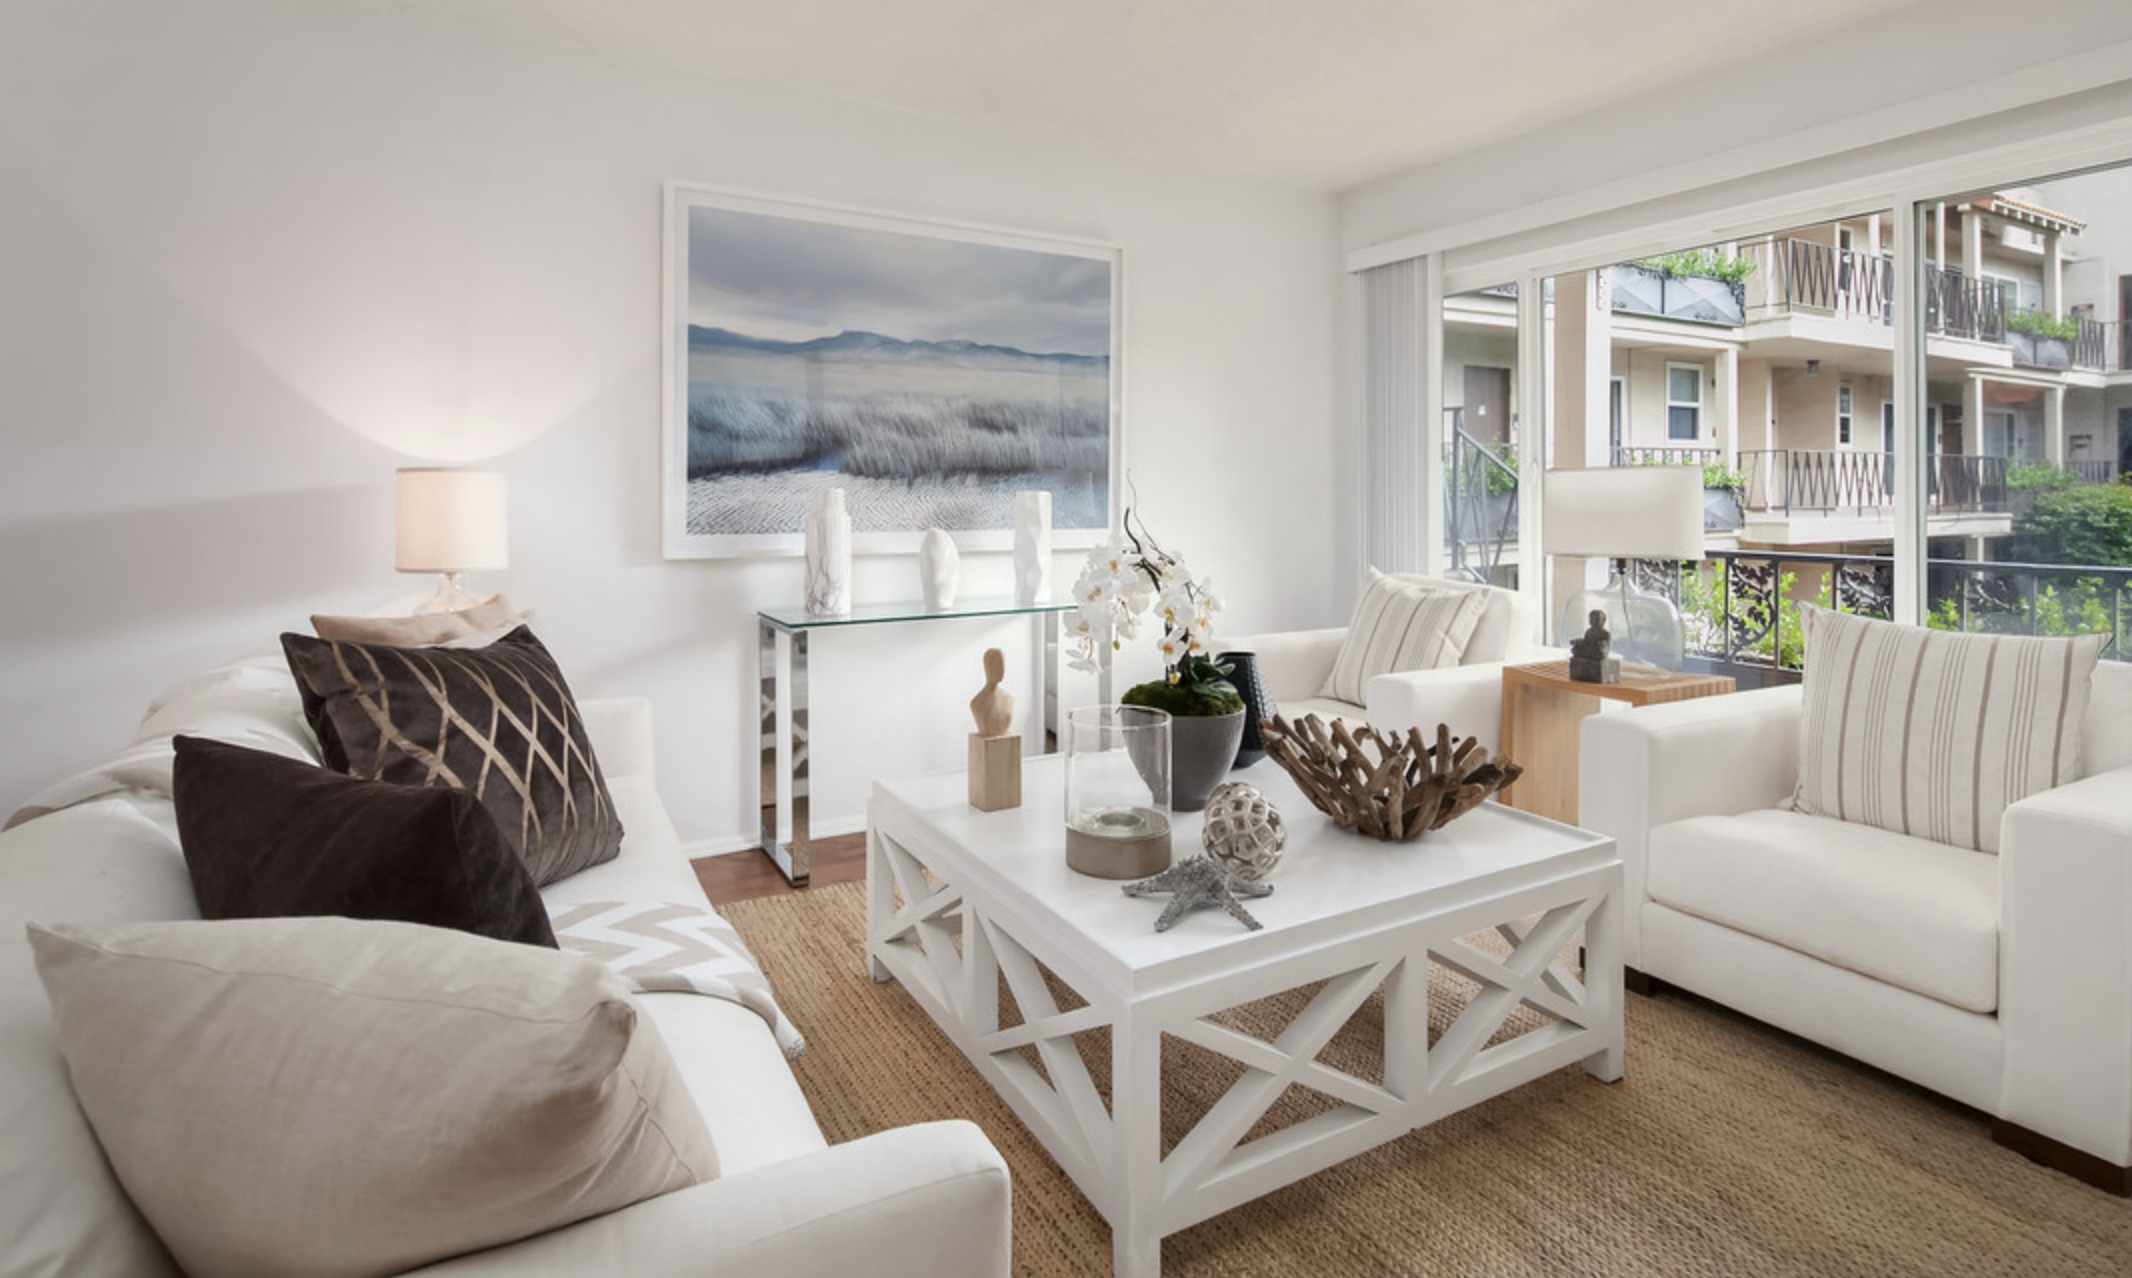 Prime Brentwood Village Chic & Beachy 2bed+2bath